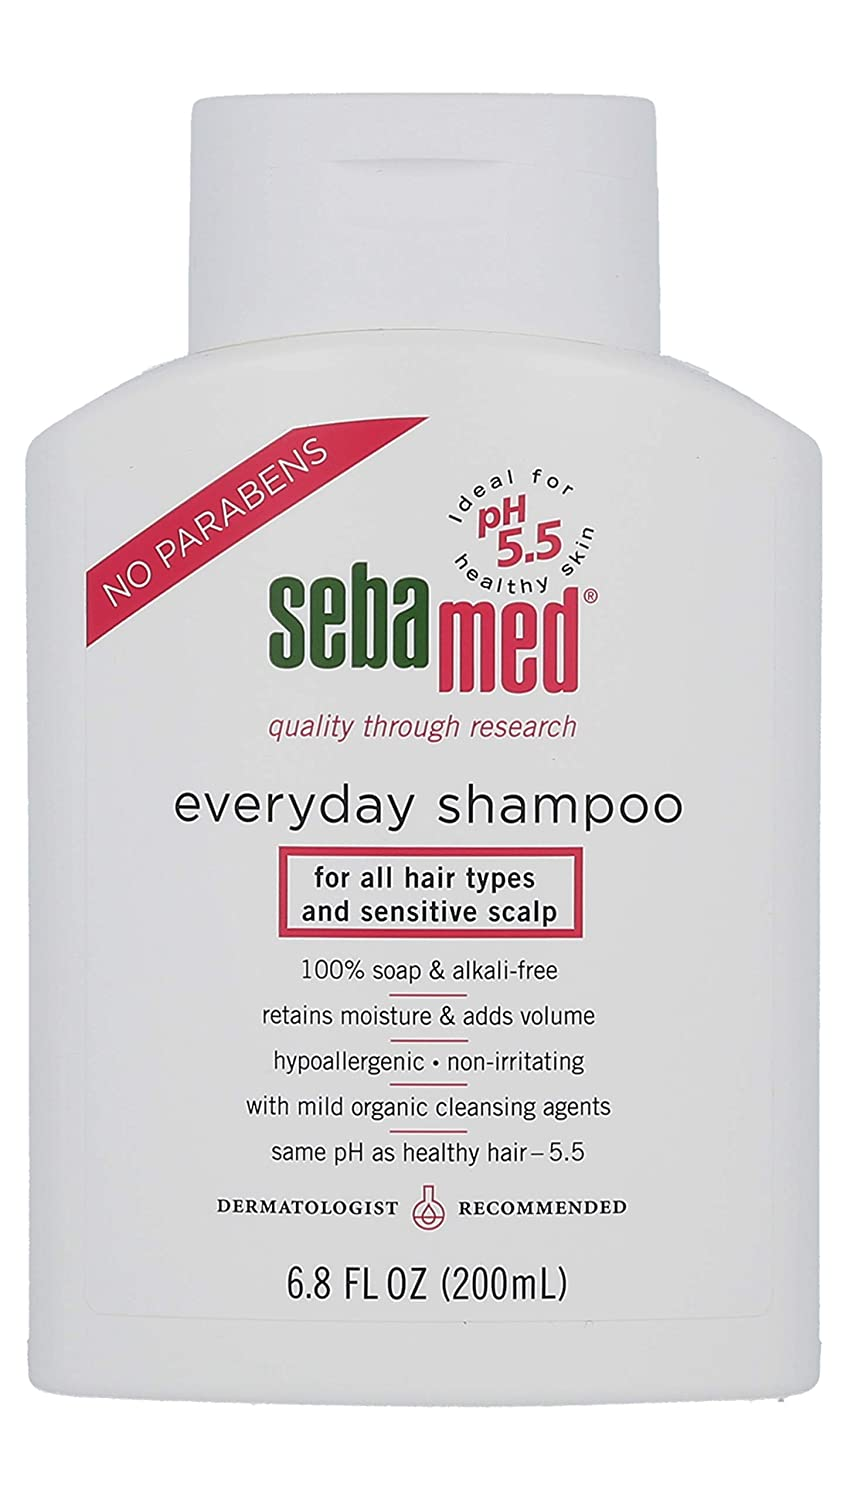 Sebamed everyday shampoo, for all hair types and sensitive scalp, 6.8 Fluid Ounce Bottle by Sebamed B000BRSHX4